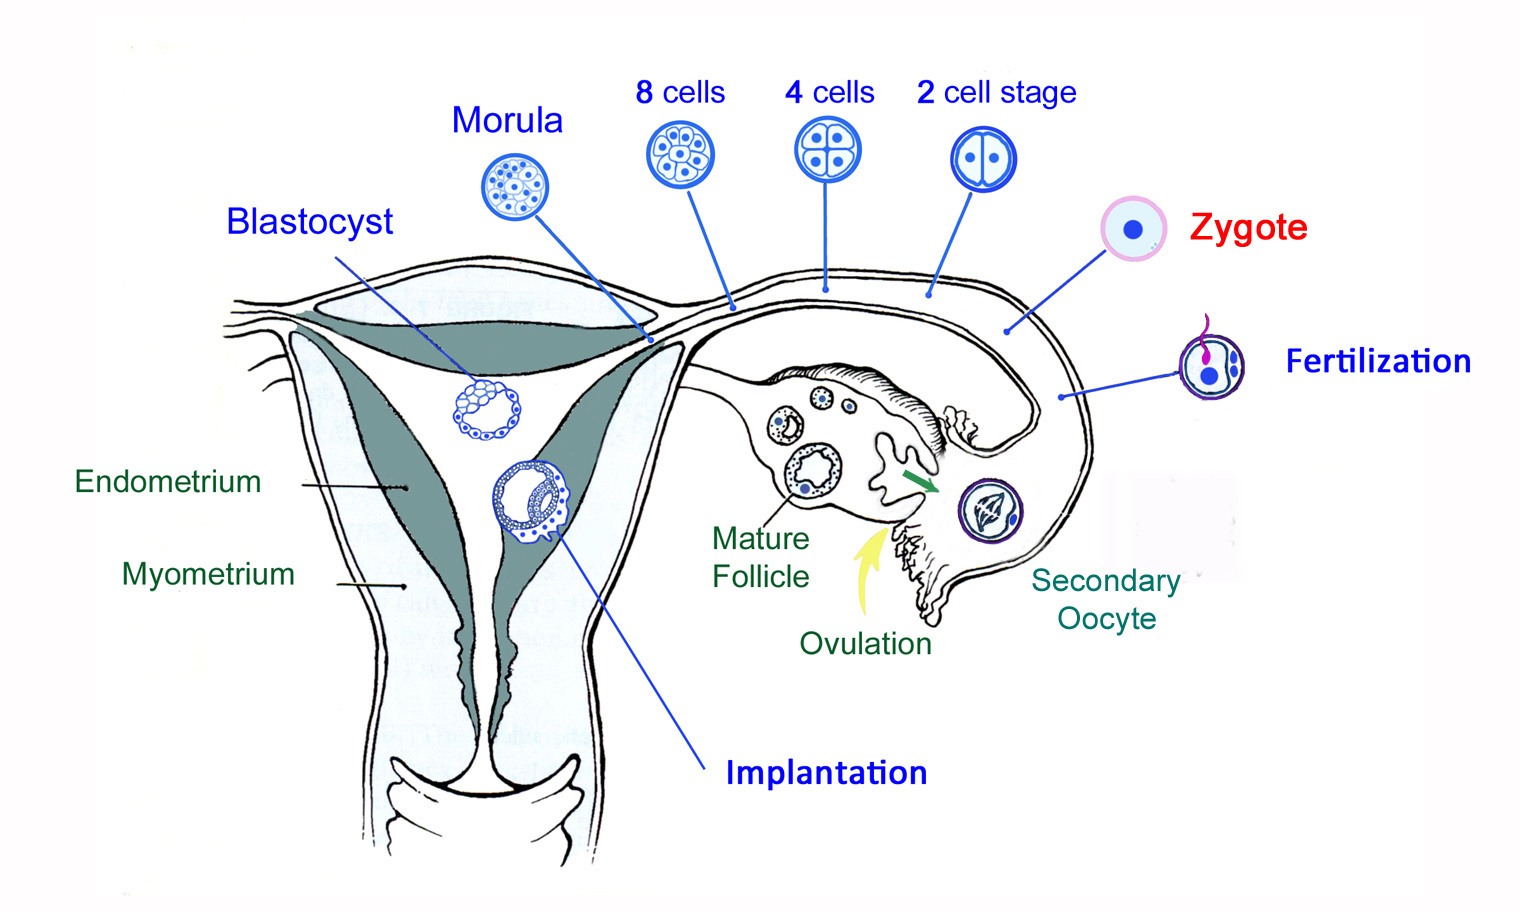 The Germinal Phase of the Embryo, from Fertilization to Implantation.